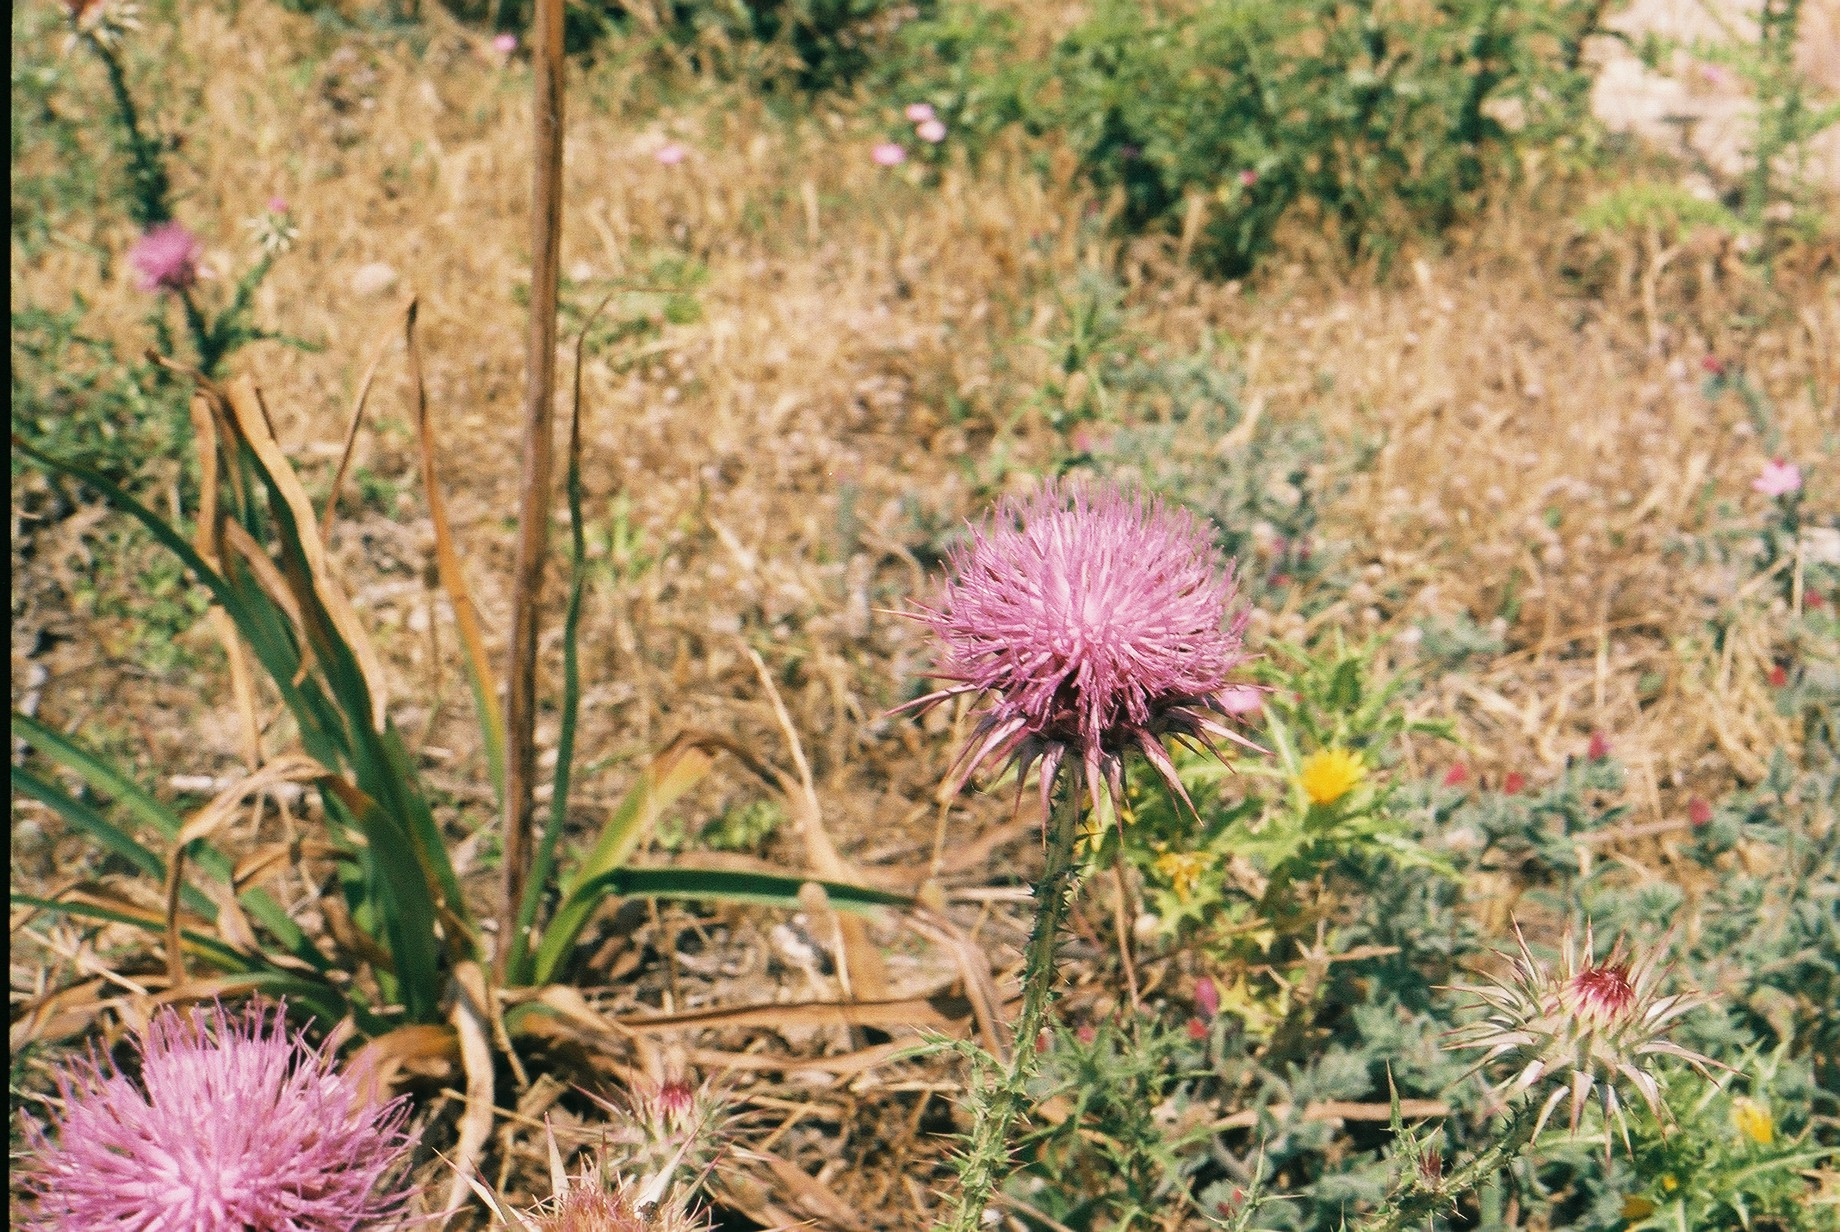 north cyprus, visit cyprus, go north cyprus, bicycle touring apocalypse, travel, travel blog, explore, adventure, adventure cycling, cyclist, plants, plant photography, expedition, jack macgowan, 35mm, canon, canon ae-1, film is not dead, film photography blog, bicycle touring apocalypse